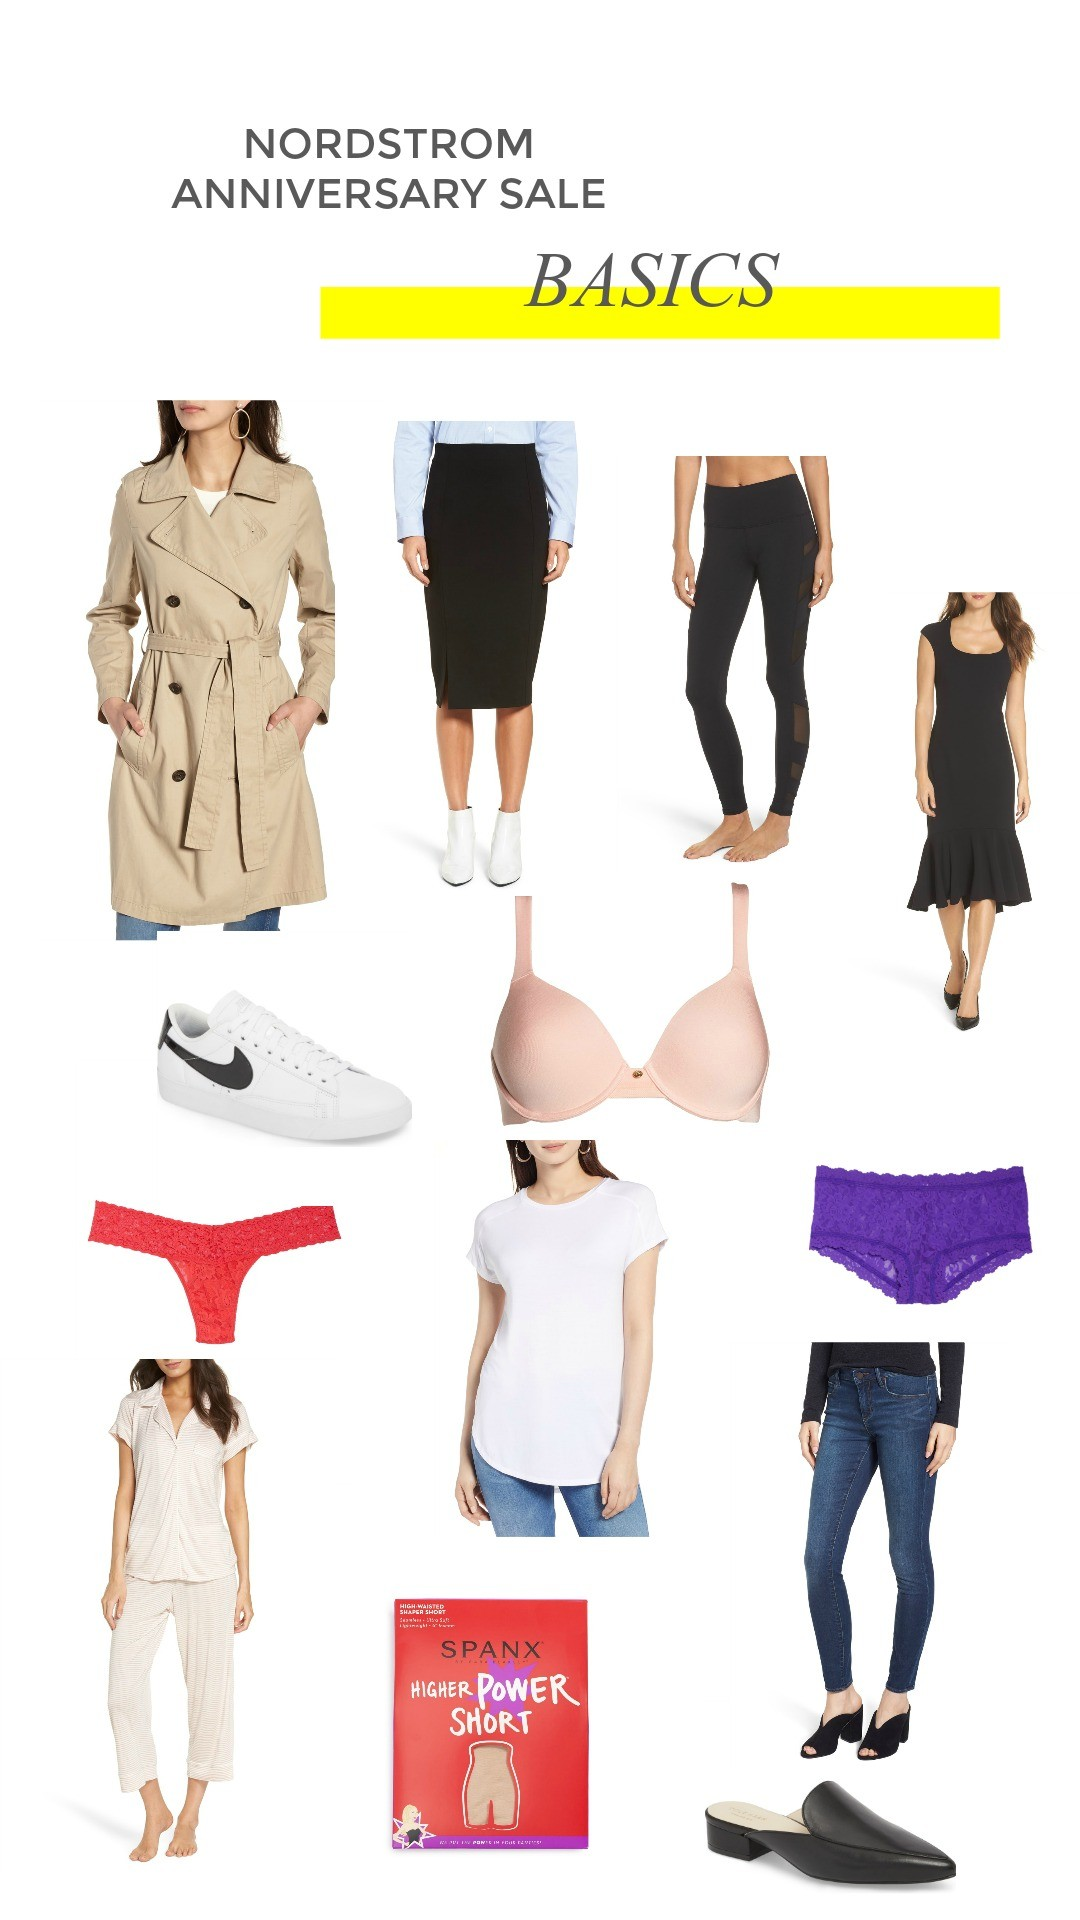 f6c16b190df2e So many great basics come from Nordstrom and are apart of the sale! Wooo! I  loveee that hanky-panky